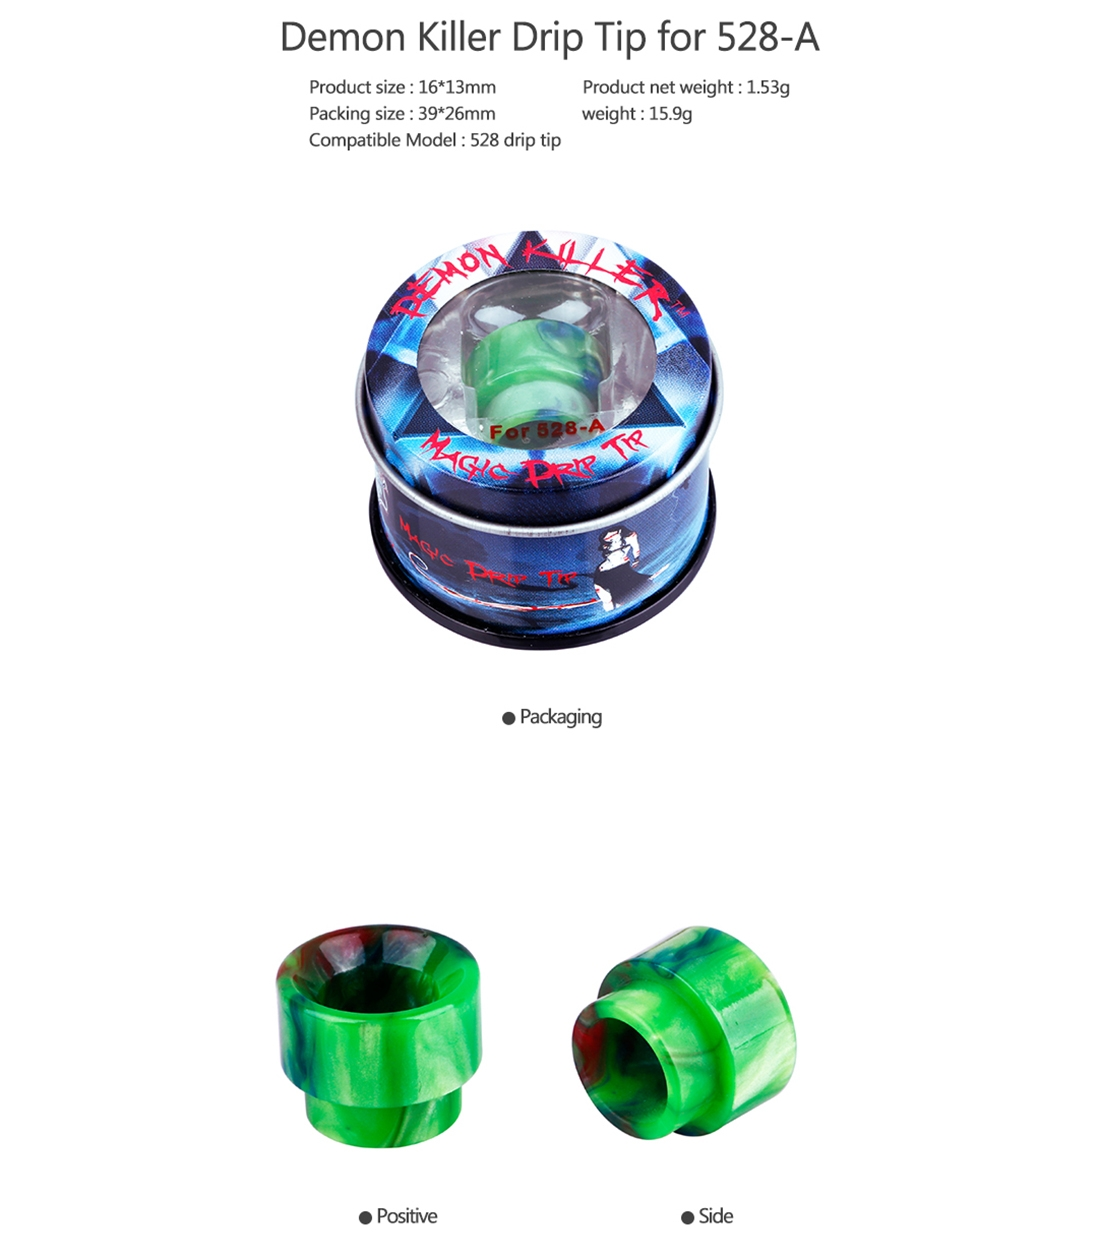 Demon Killer 528-A Resin Drip Tip Parameter